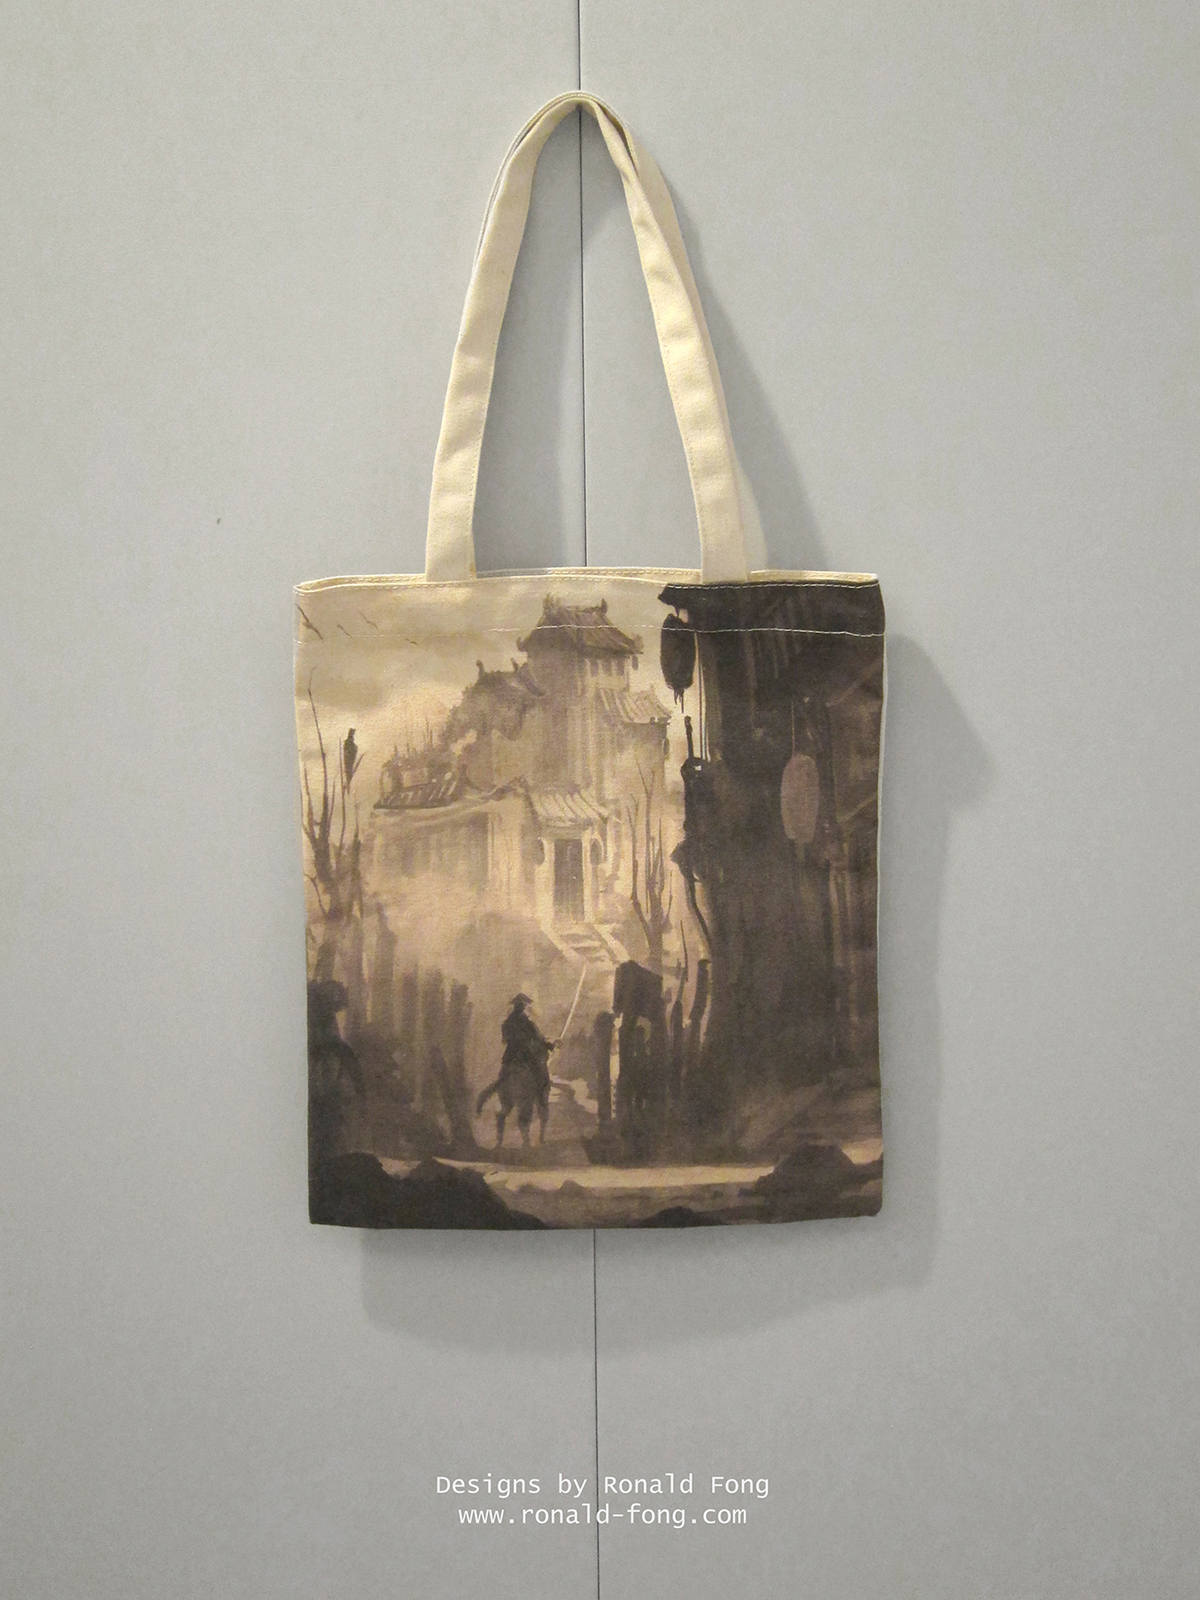 toteBag Designs by Ronald Fong D